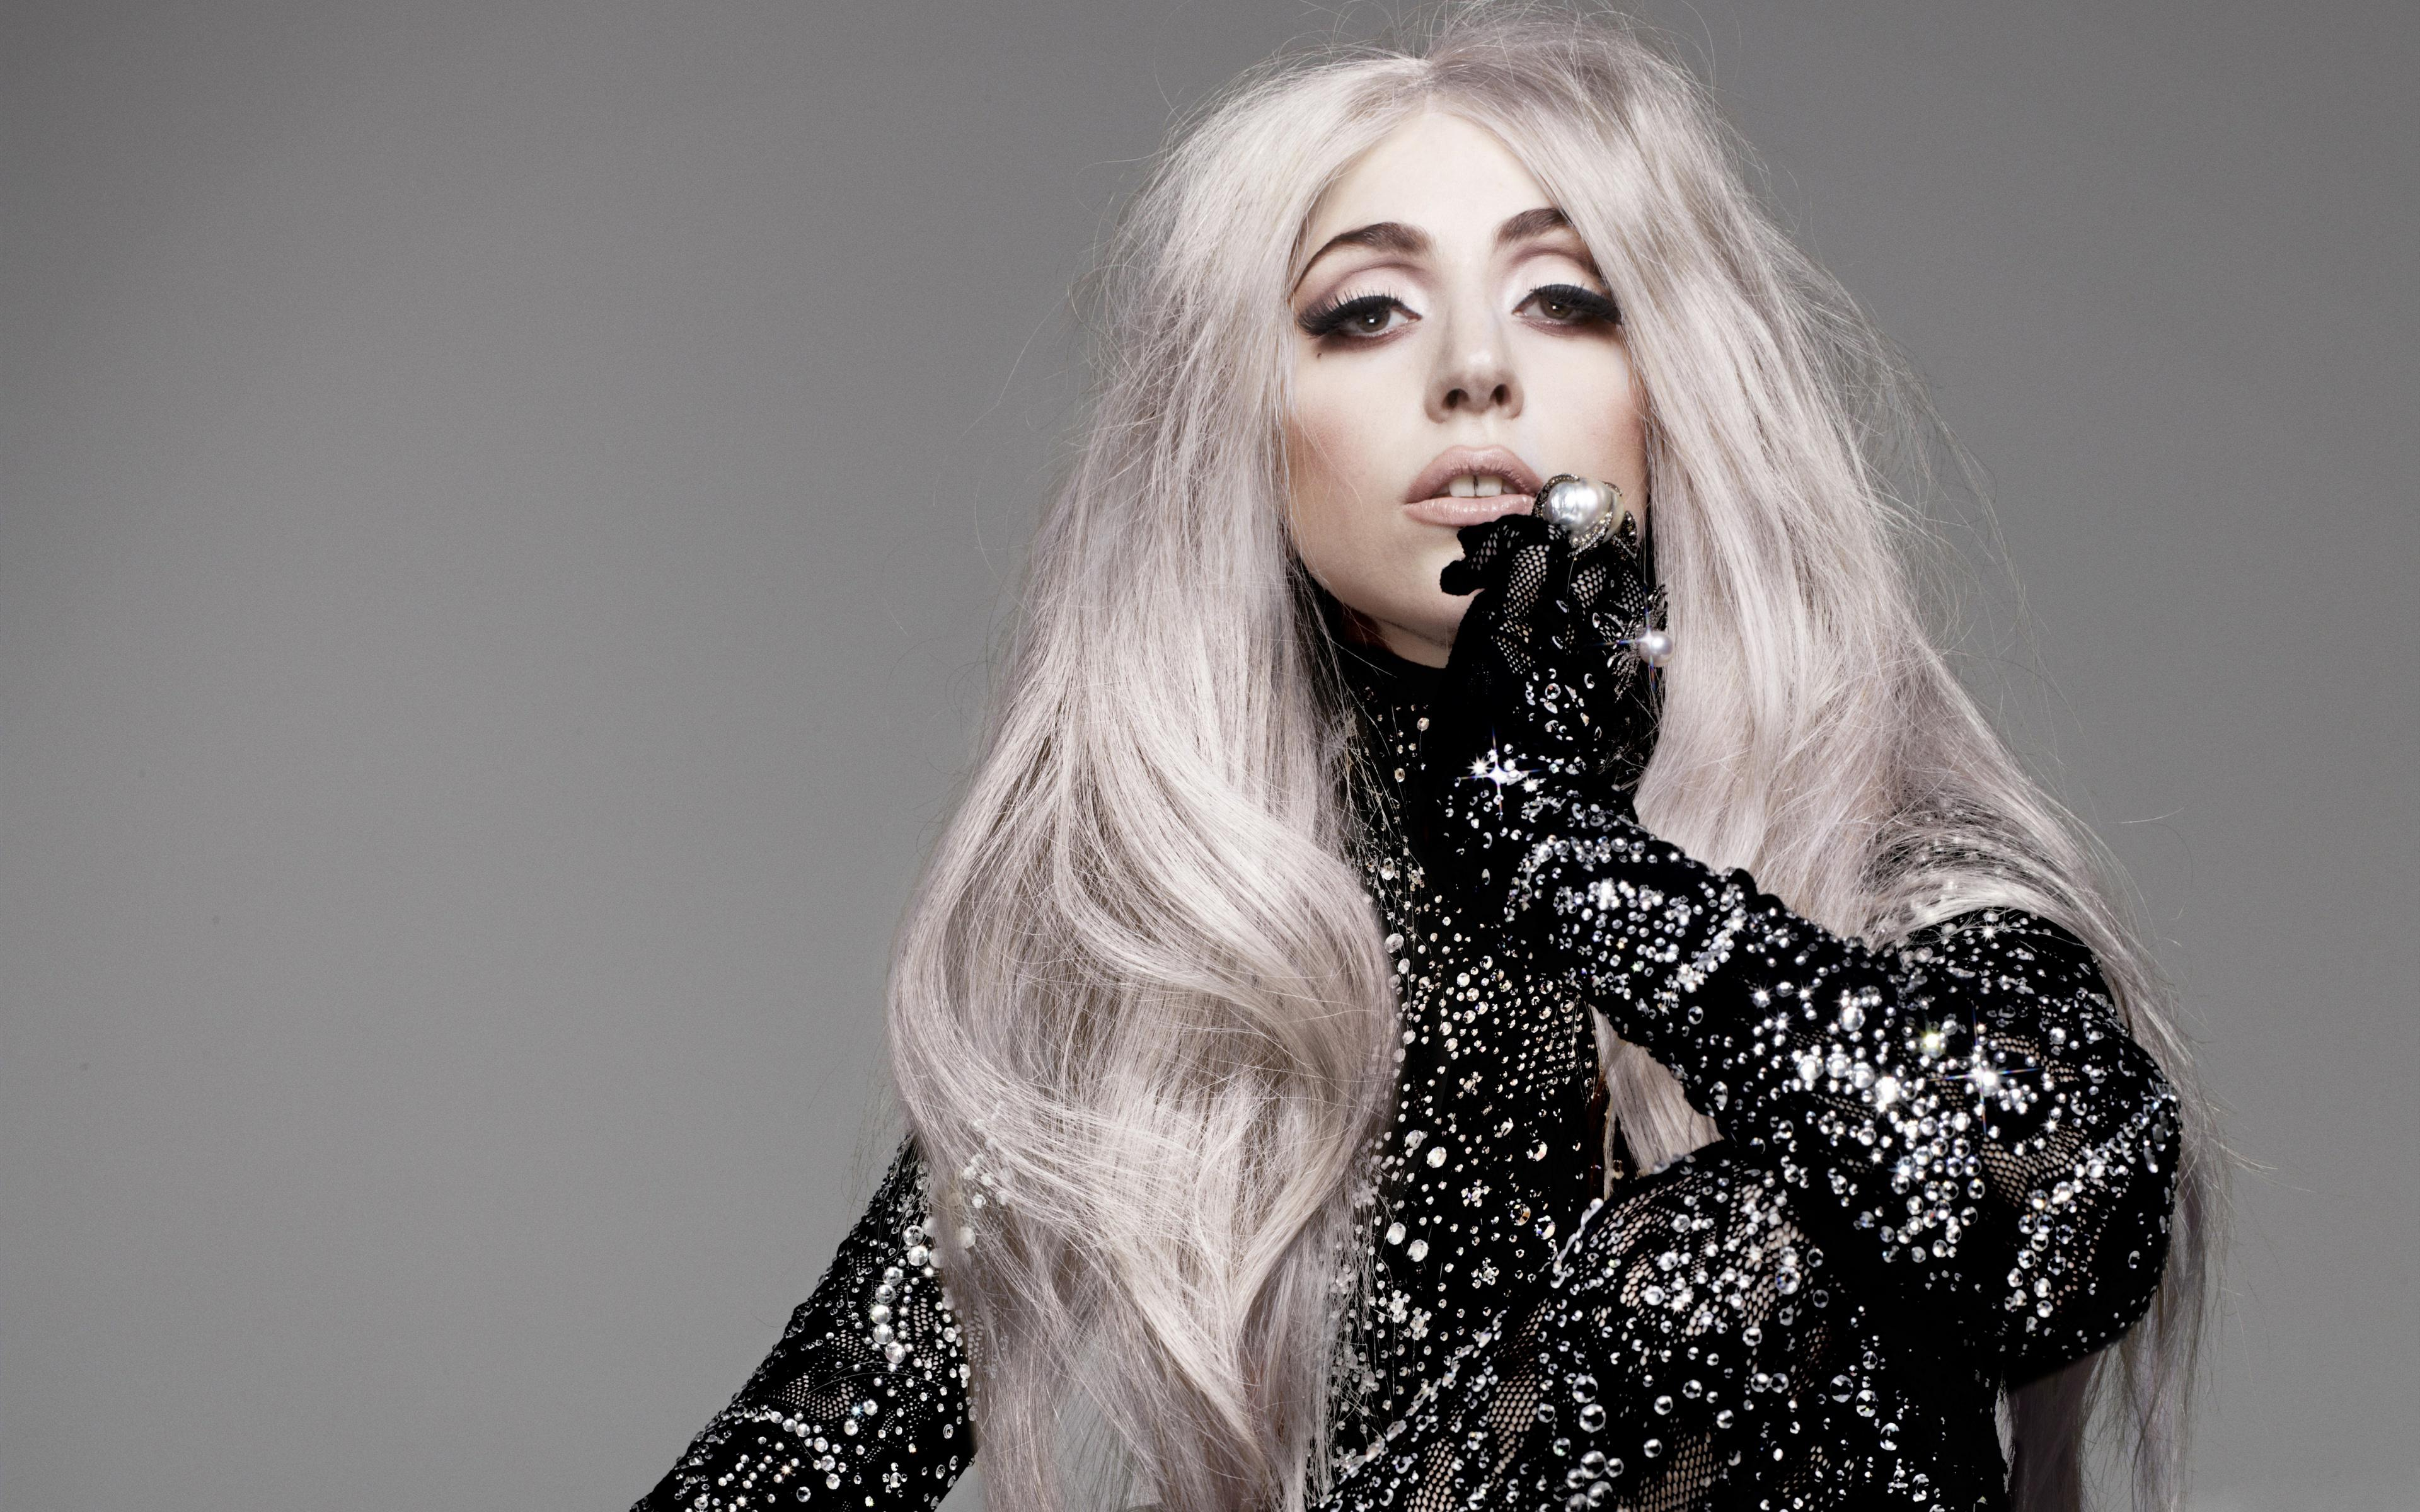 Lady Gaga 2019 Hd Celebrities 4k Wallpapers Images